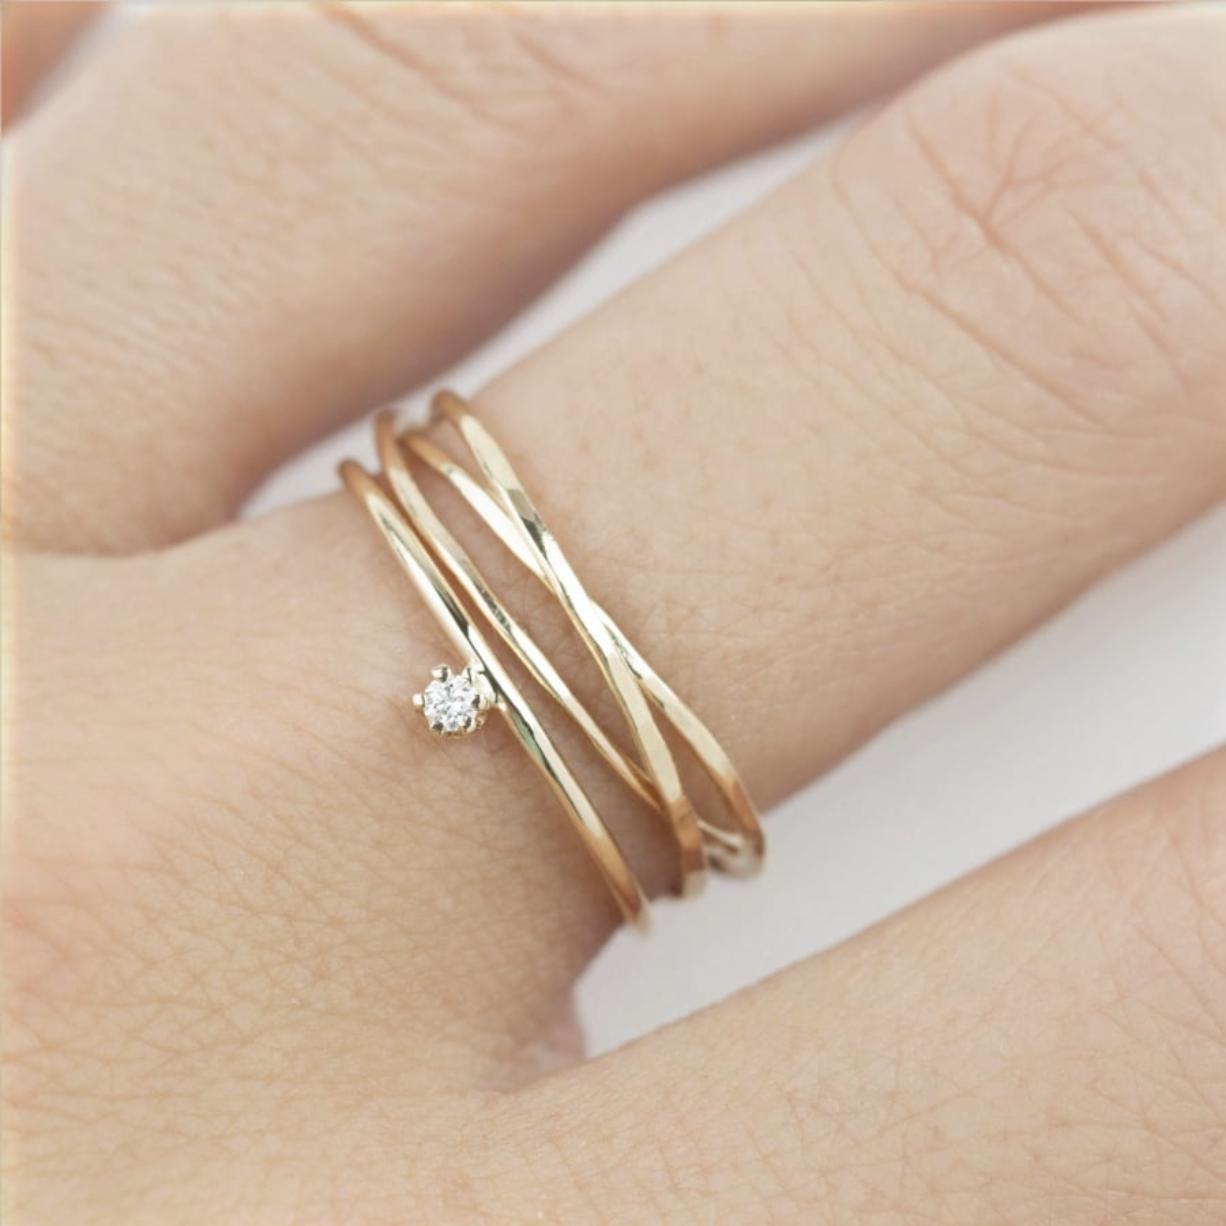 Envero Jewelry's delicate set of hand-hammered trinity rings, and a 14K gold band with solitaire diamond. The piece reflects a trend toward unique modern bridal jewelry.